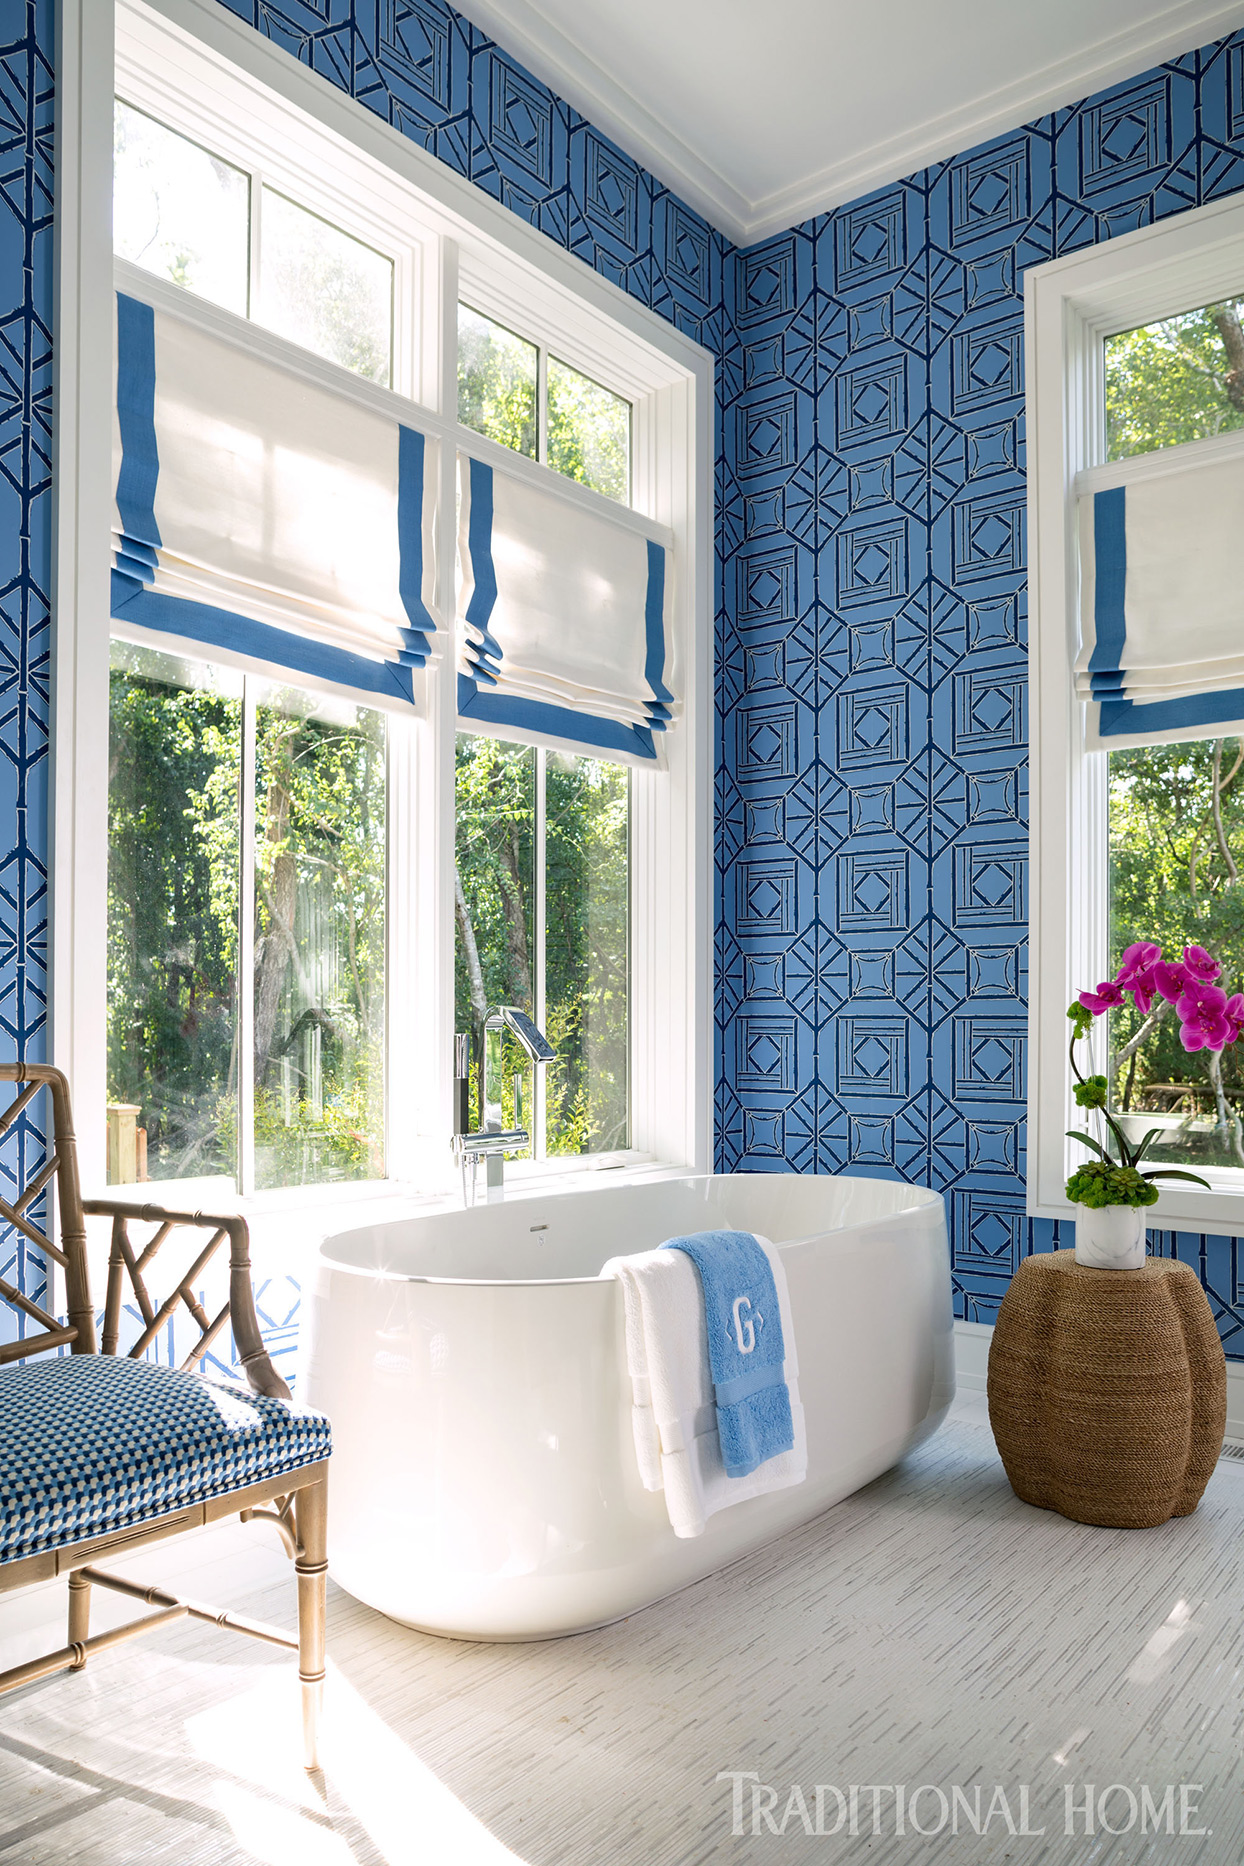 Bathroom with geometric blue wallpaper